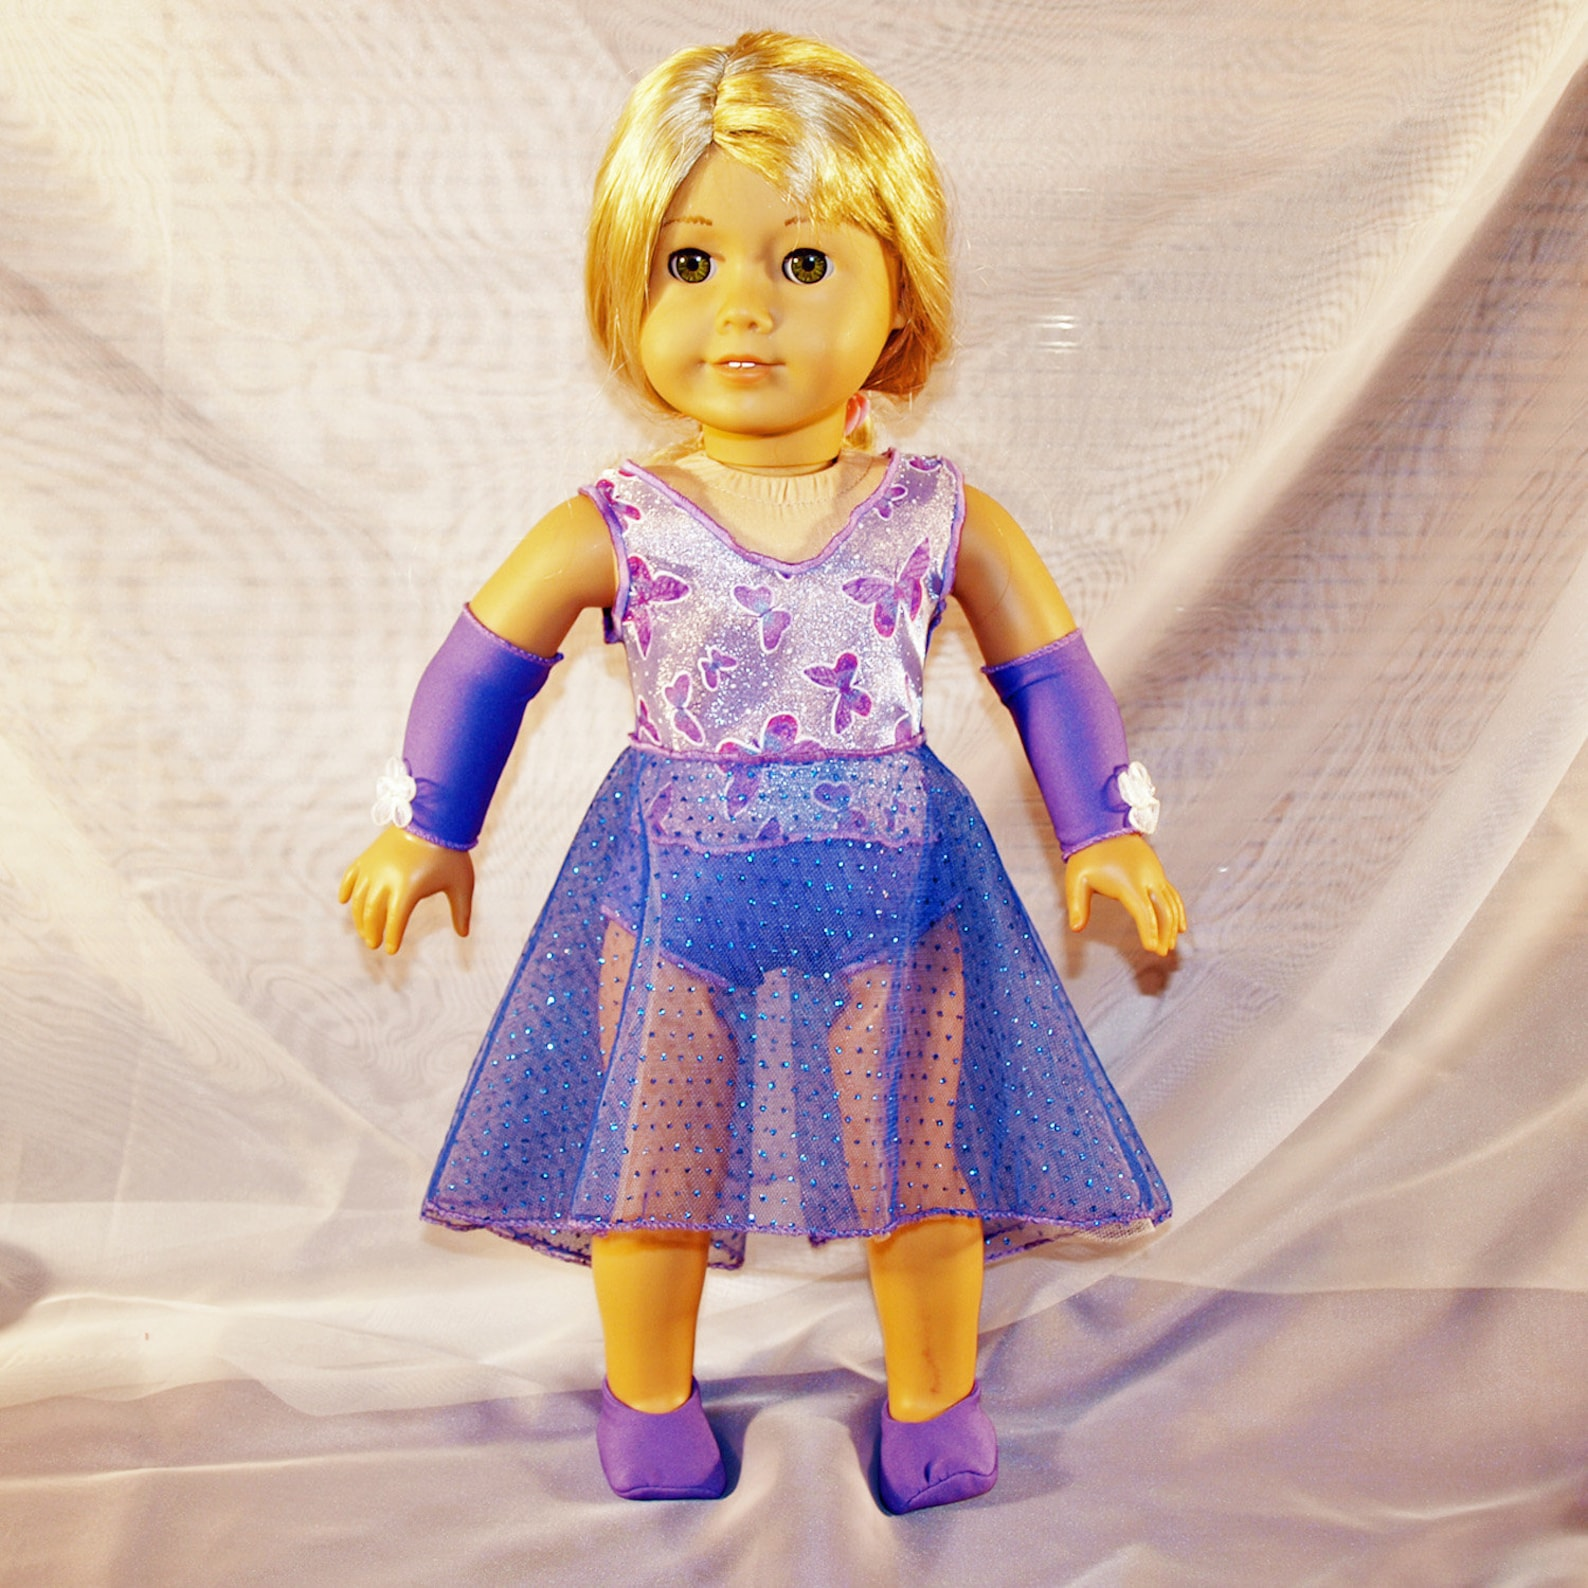 dance costume for ballet or lyrical in shades of purple with hair clip, armbands and shoes, modeled on american girl doll